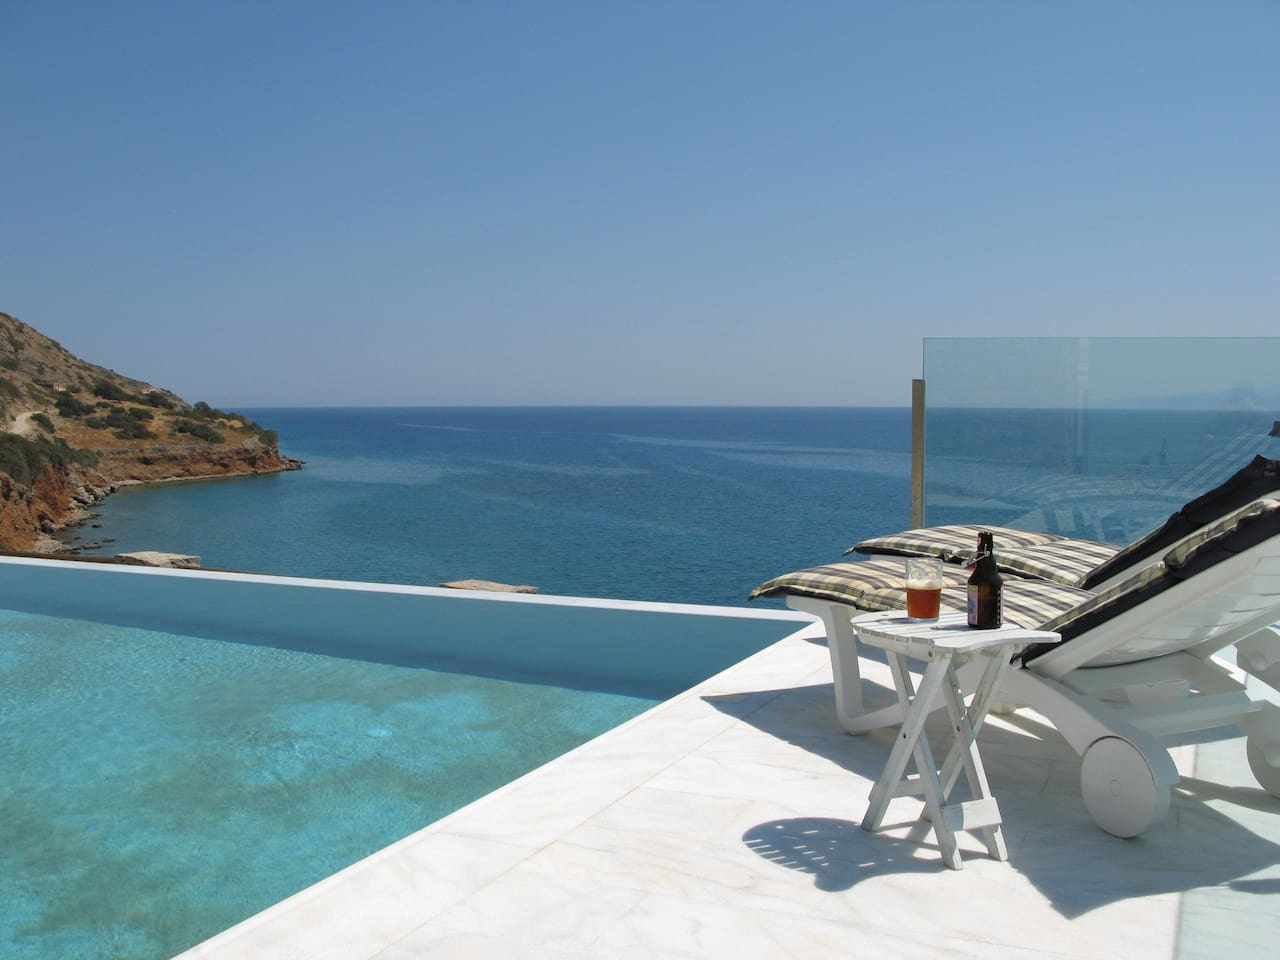 The fabulous 10 x 5 m white marble pool with infinity rim directly above the sea